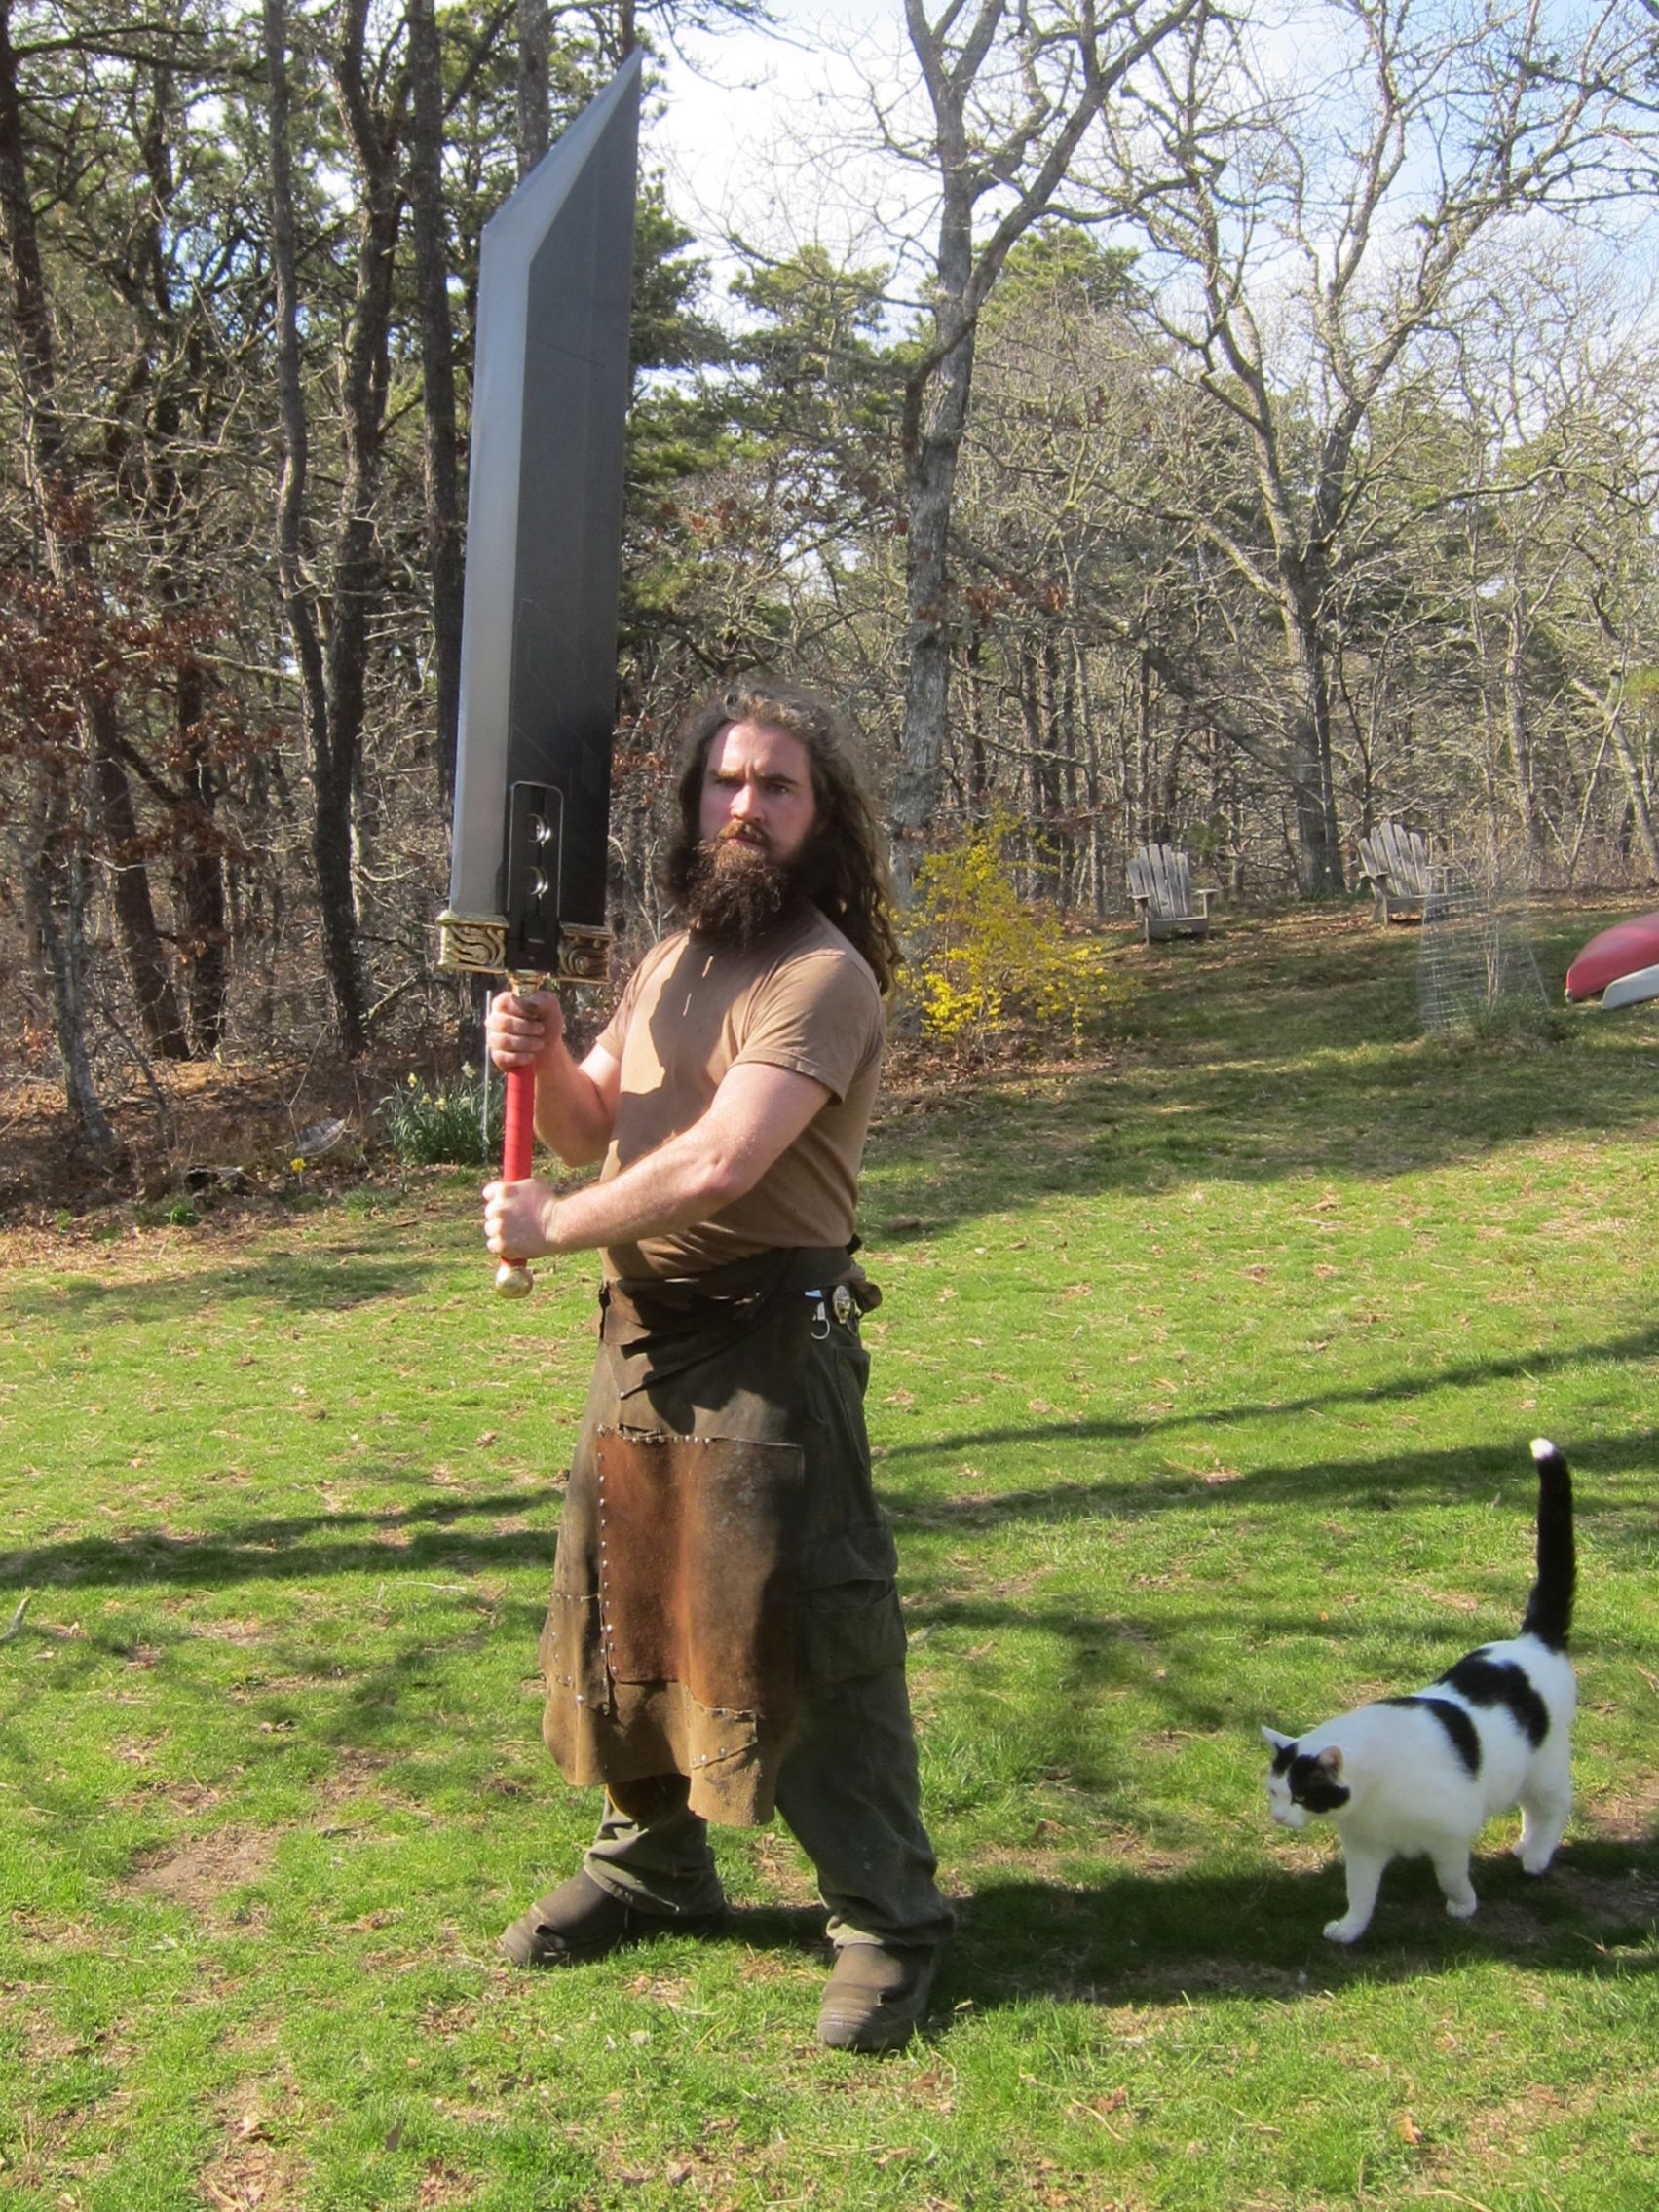 So This Guy Makes Swords and Things